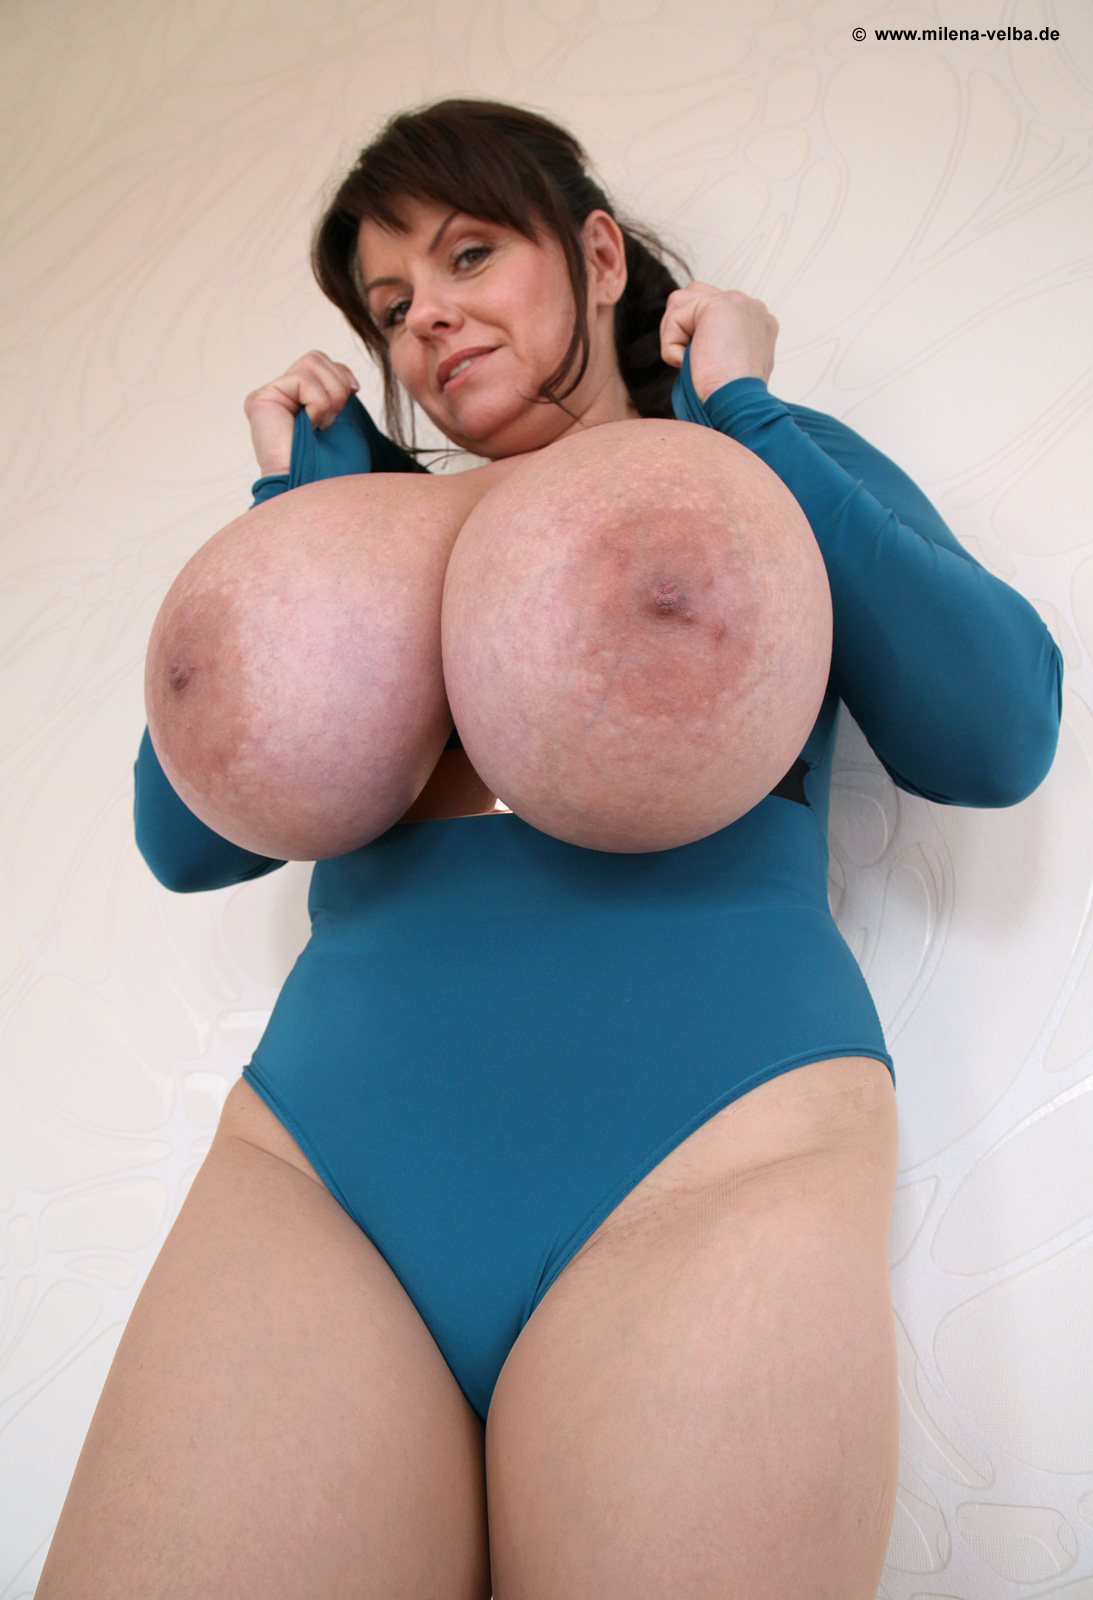 Commit Huge natural breasts tumblr Tell me